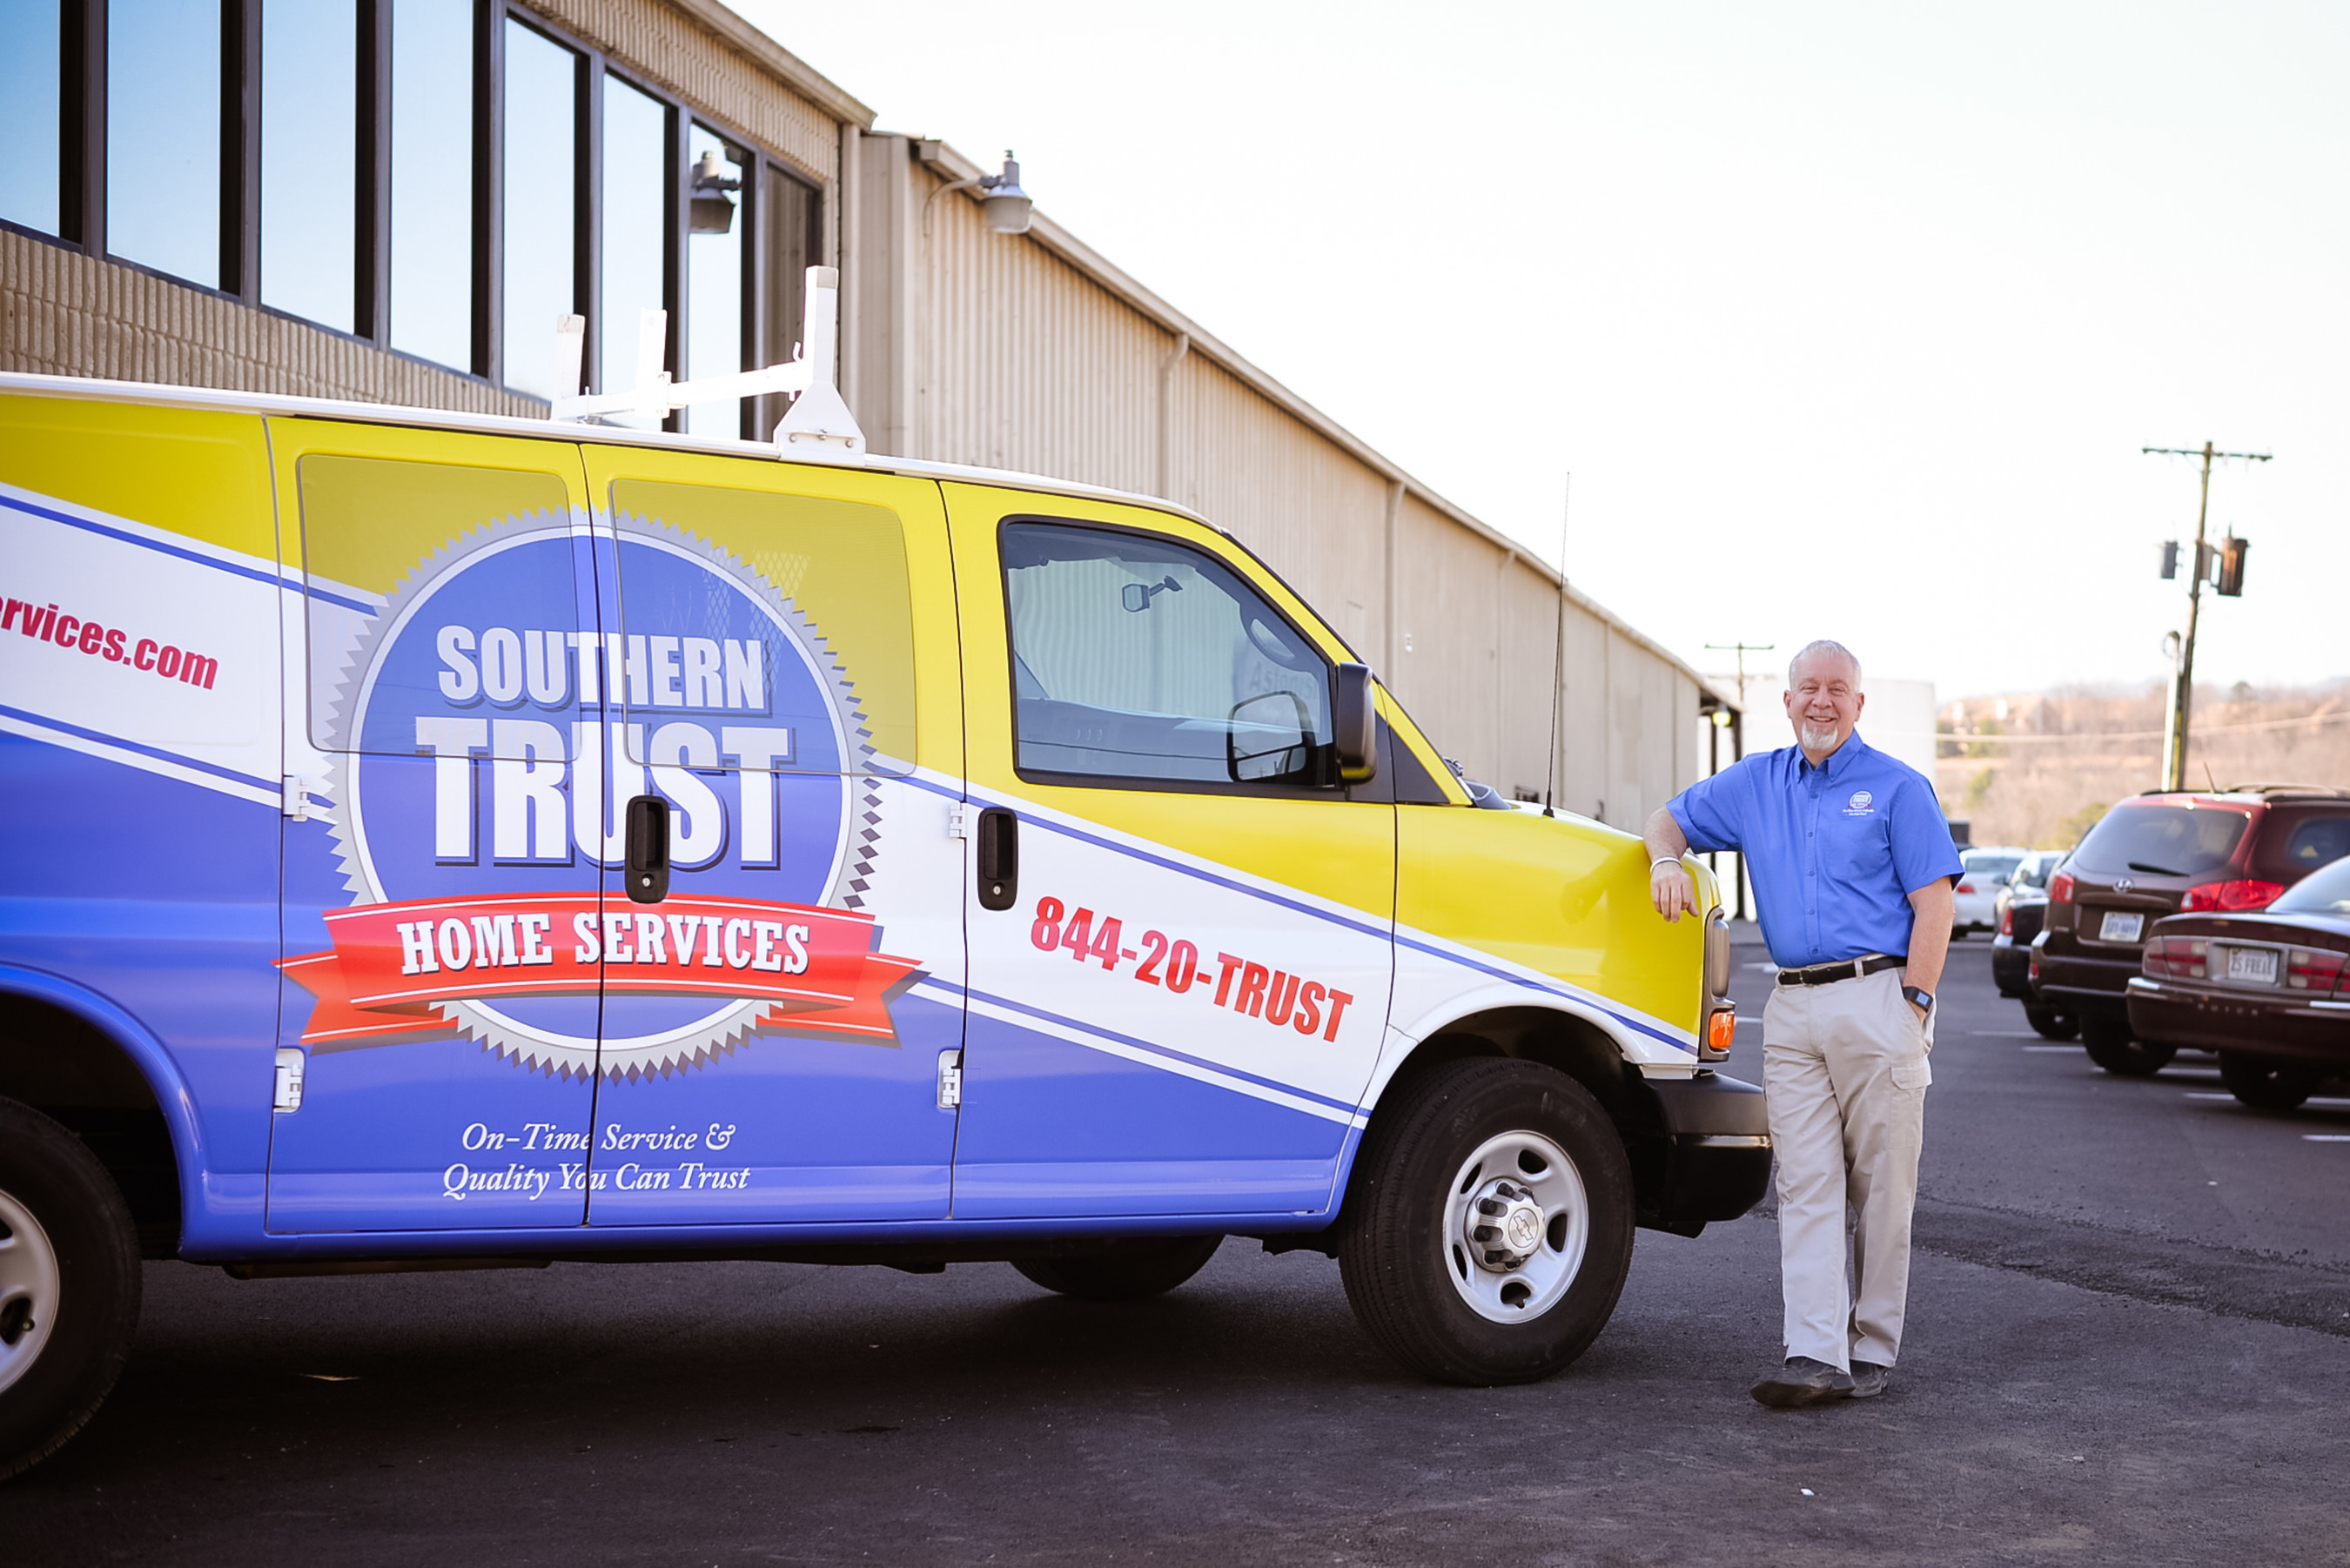 Roanoke's Southern Trust Home Services offers homeowners tips to prevent water damage this spring